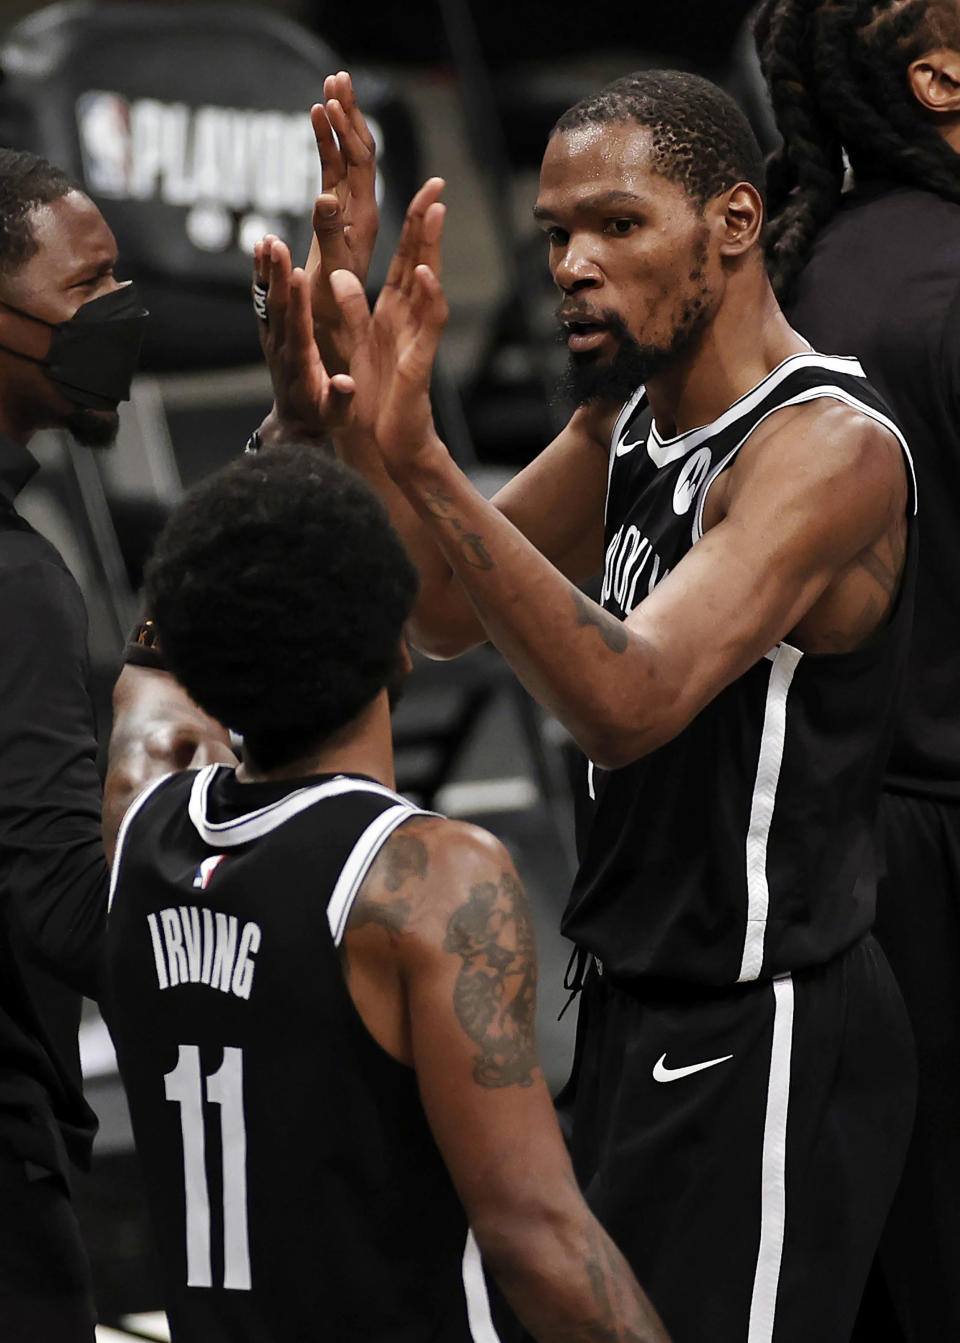 Brooklyn Nets forward Kevin Durant high-fives Kyrie Irving (11) during the second half of Game 1 of the team's NBA basketball second-round playoff series against the Milwaukee Bucks on Saturday, June 5, 2021, in New York. The Nets won 115-107. (AP Photo/Adam Hunger)